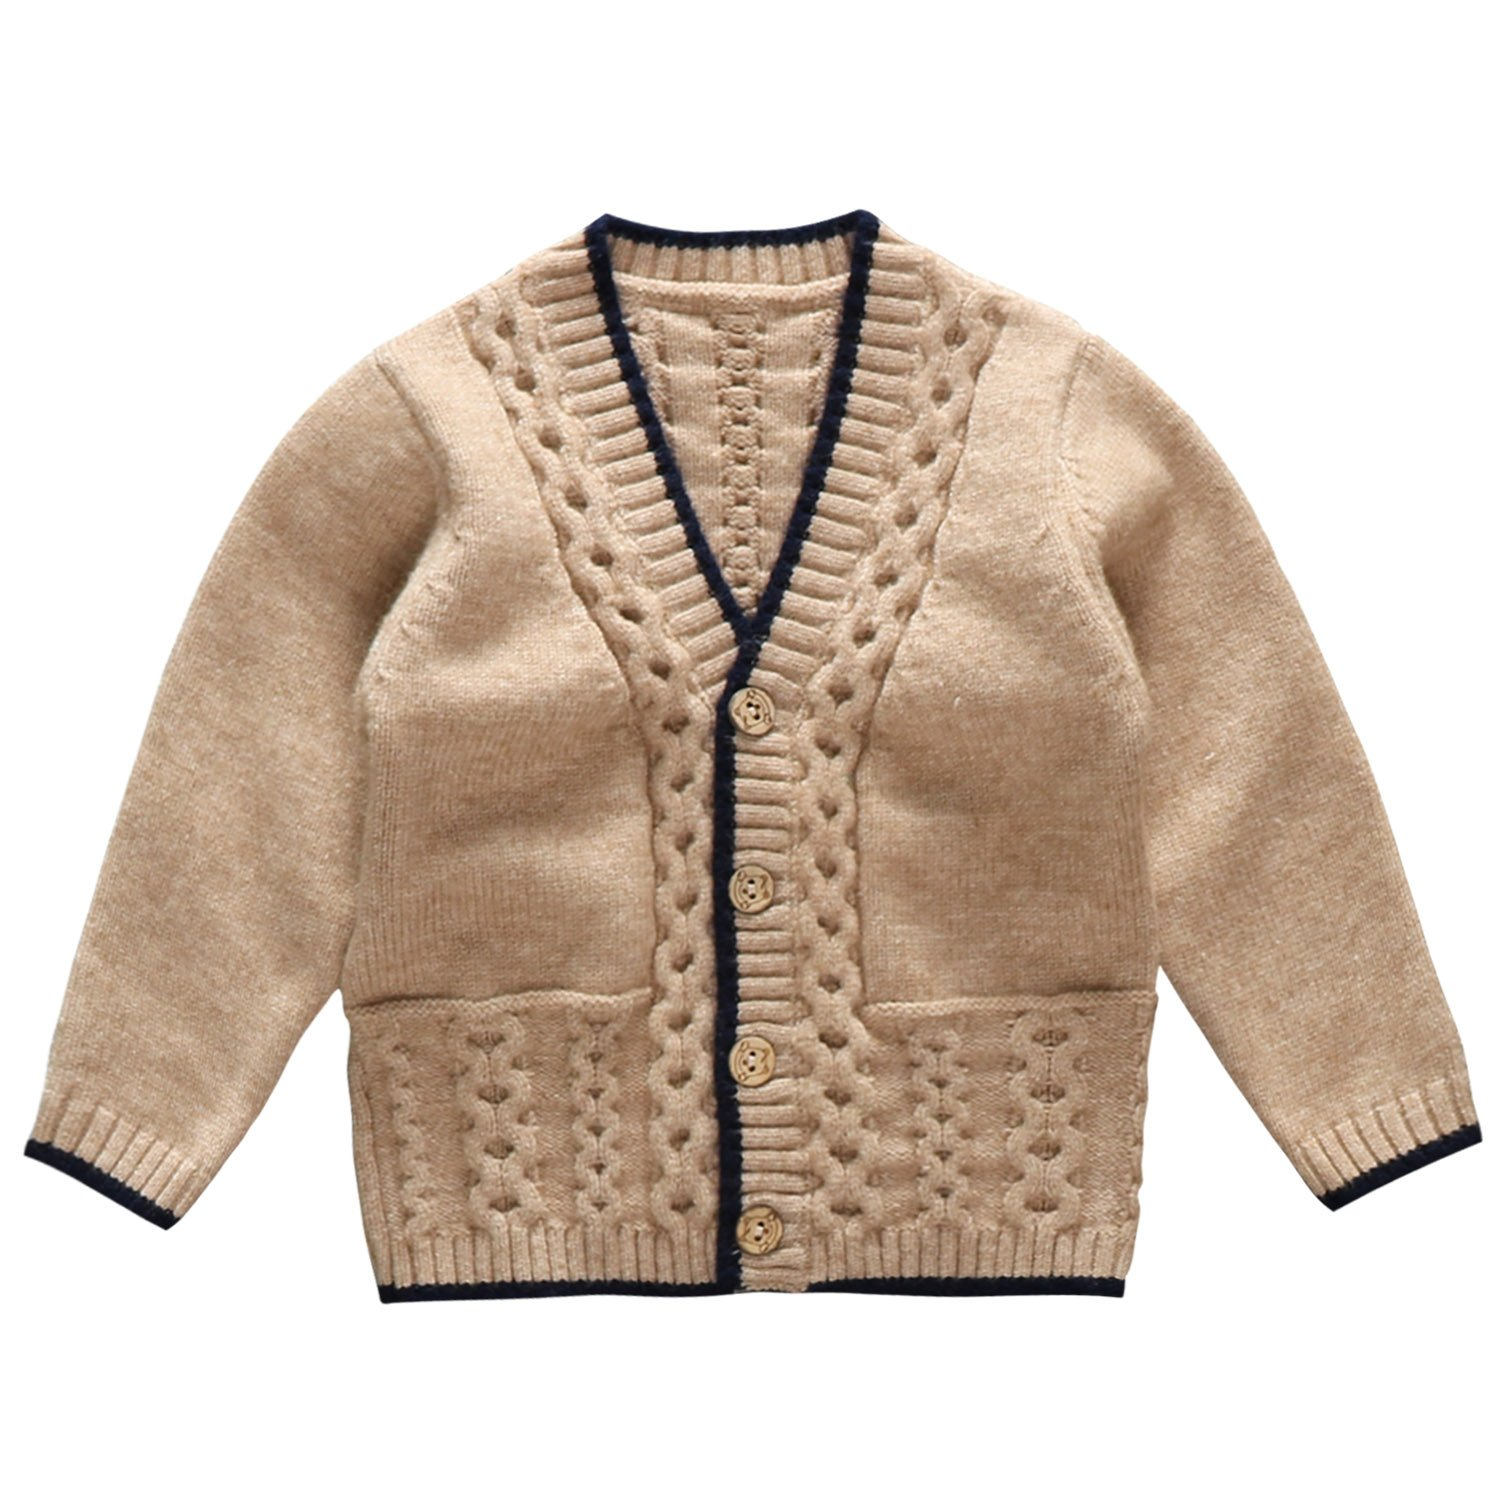 Coodebear Baby Boys' V Collar Cashmere Pocket Knitting Cardigan Winter Sweater